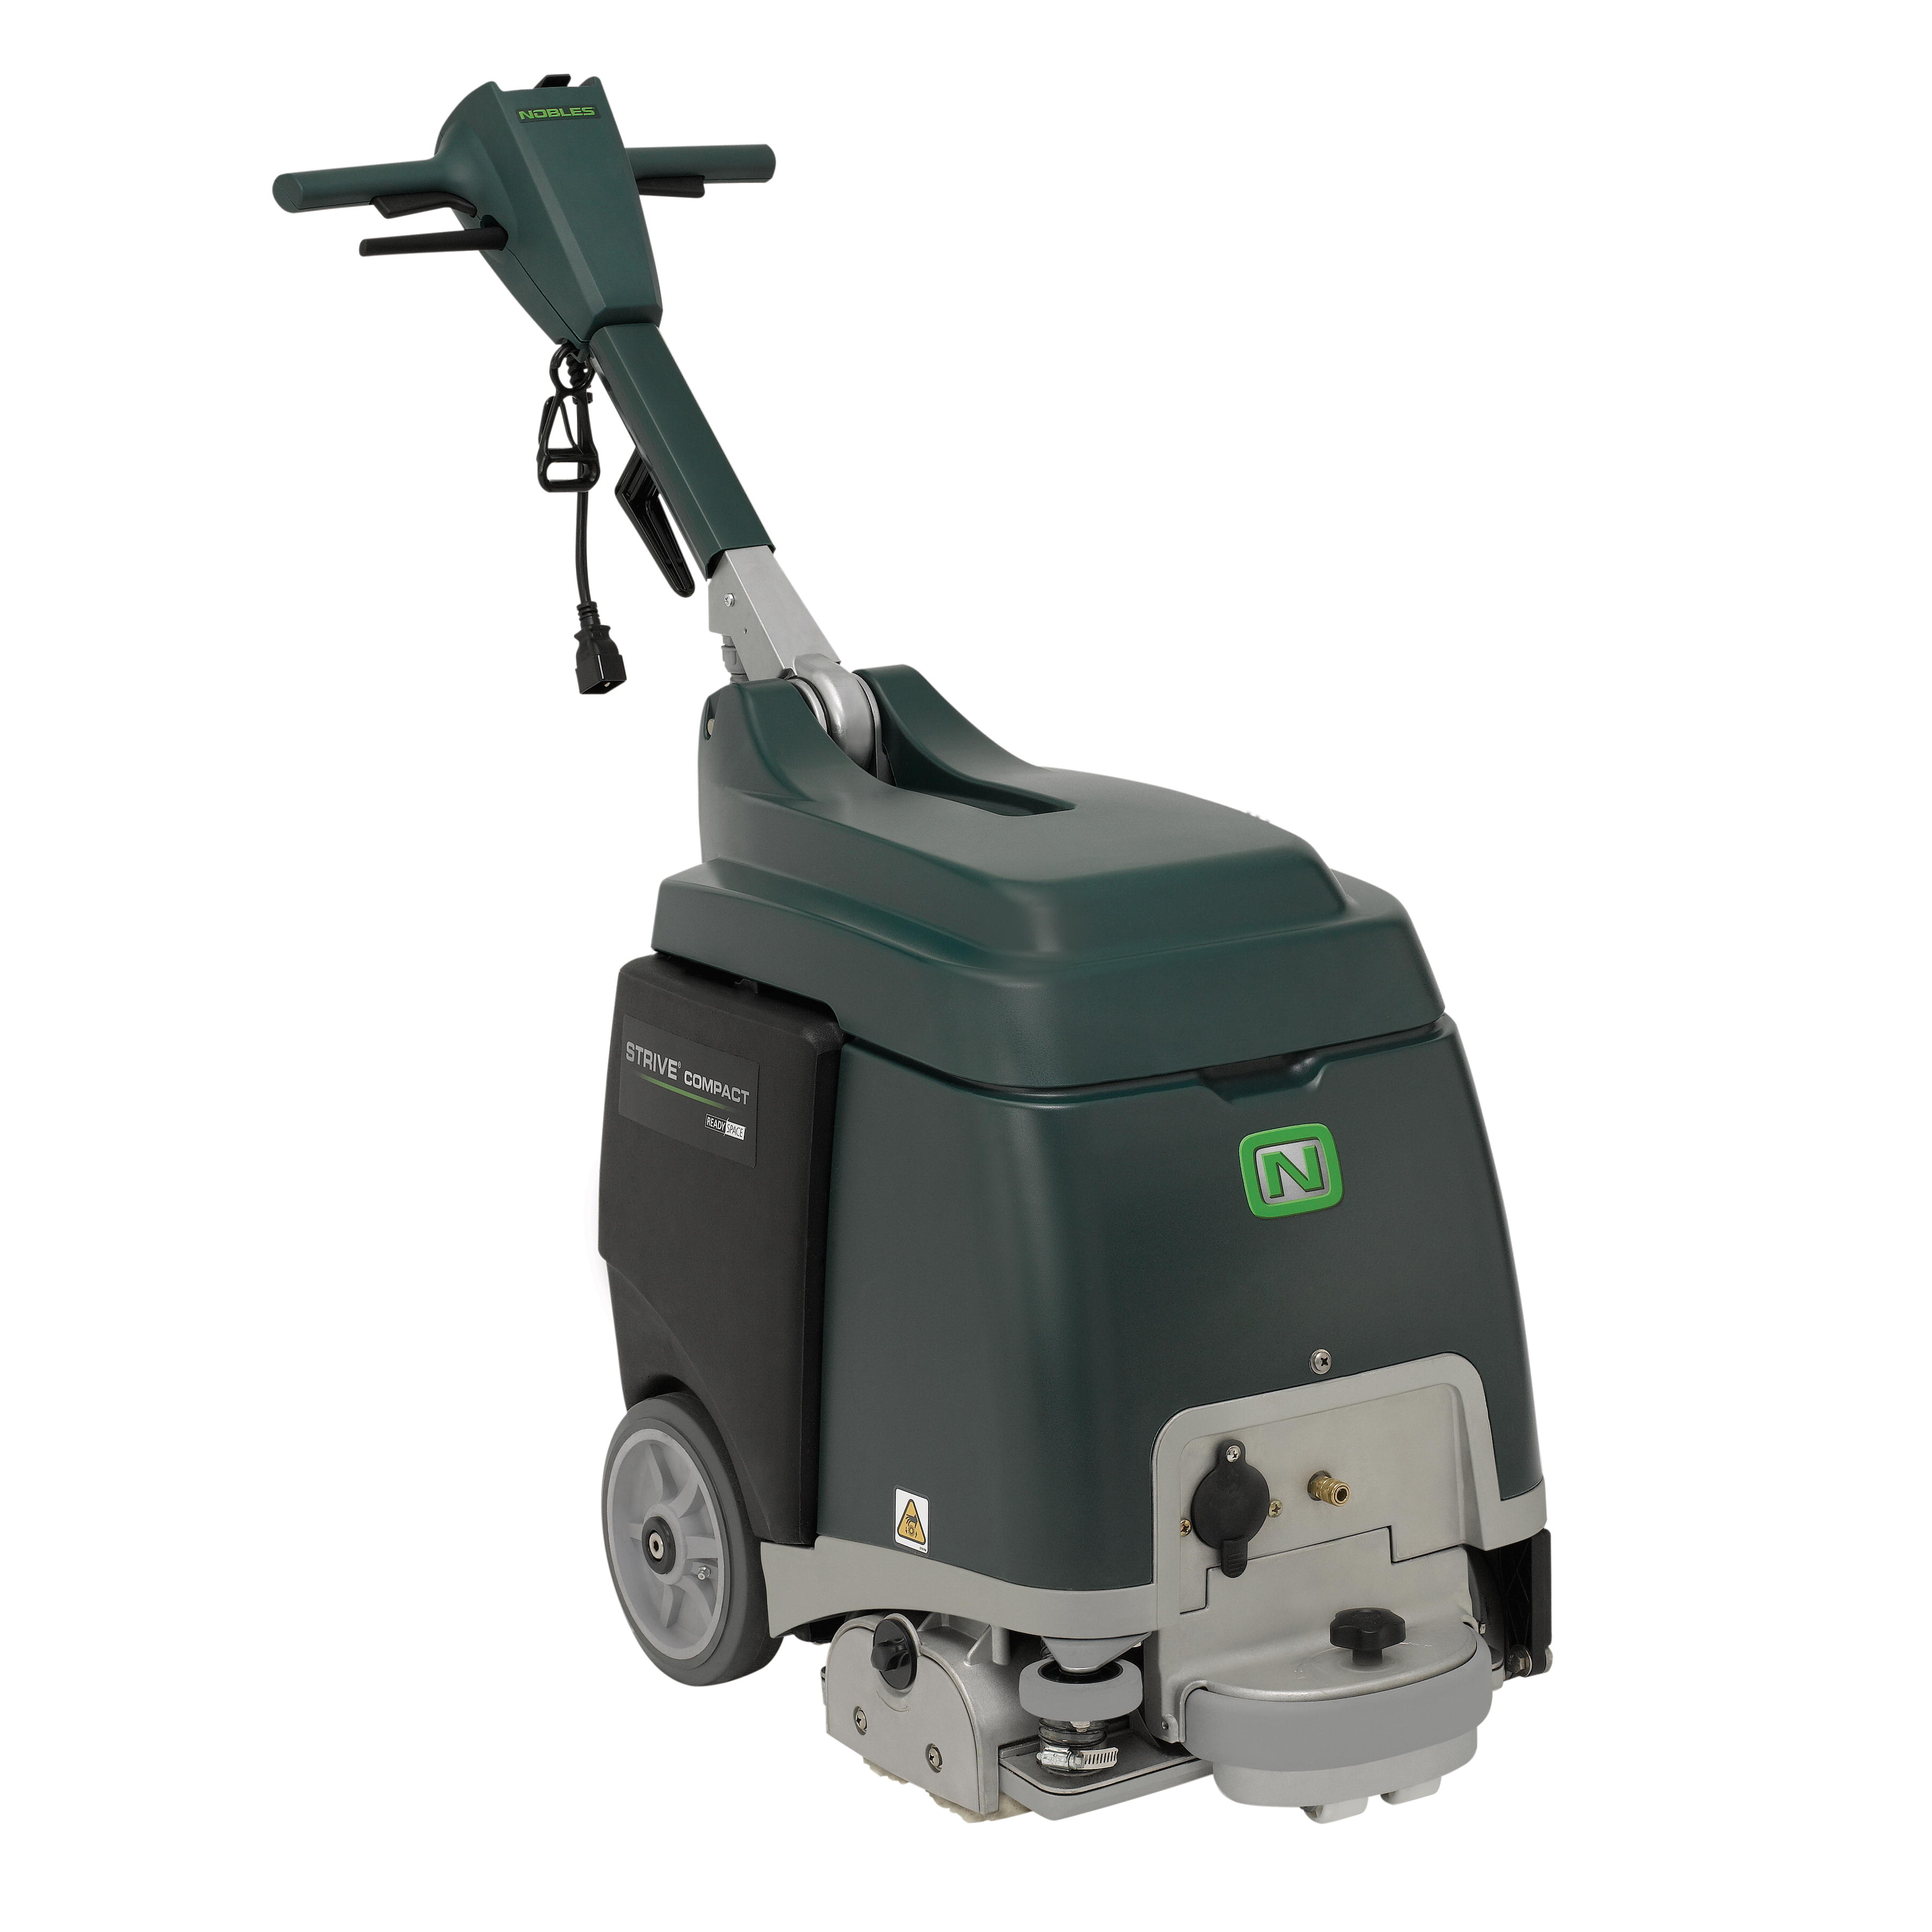 Strive Compact Interim Extractor For Sale Nobles Carpet